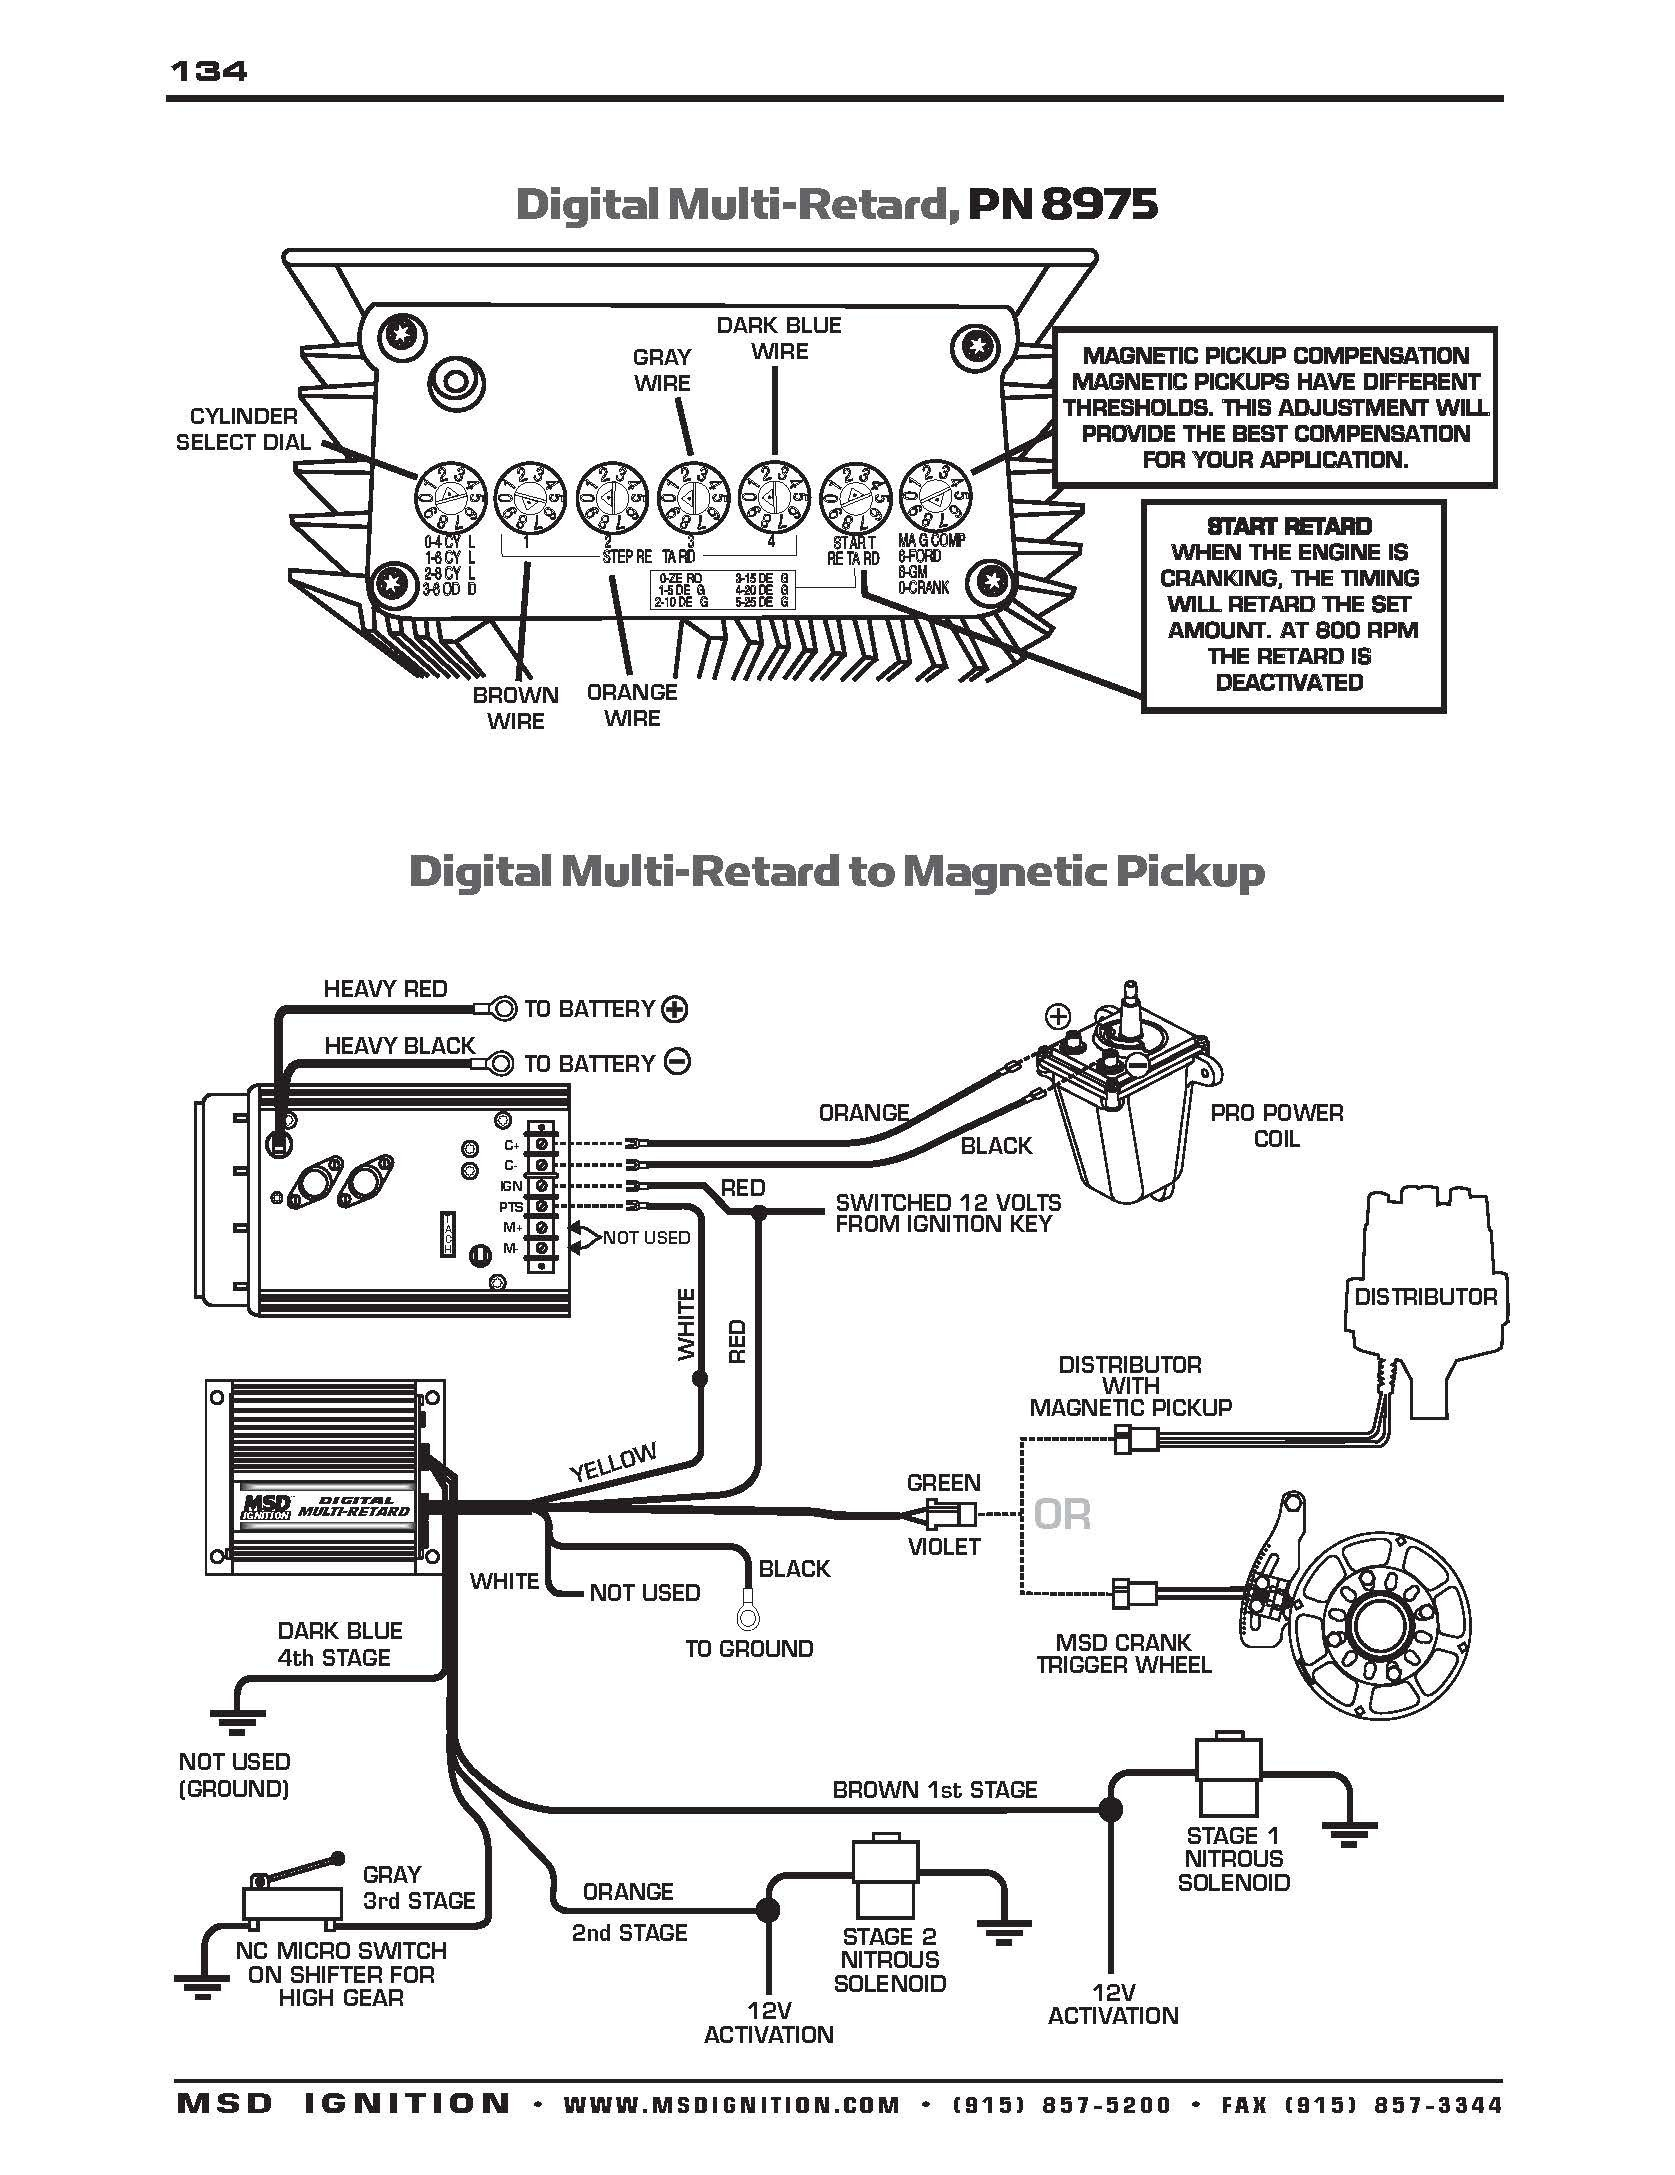 Accel Ignition Module Wiring Diagram Ford Library Msd 6a Gm 6200 Box Diagrams Free In And